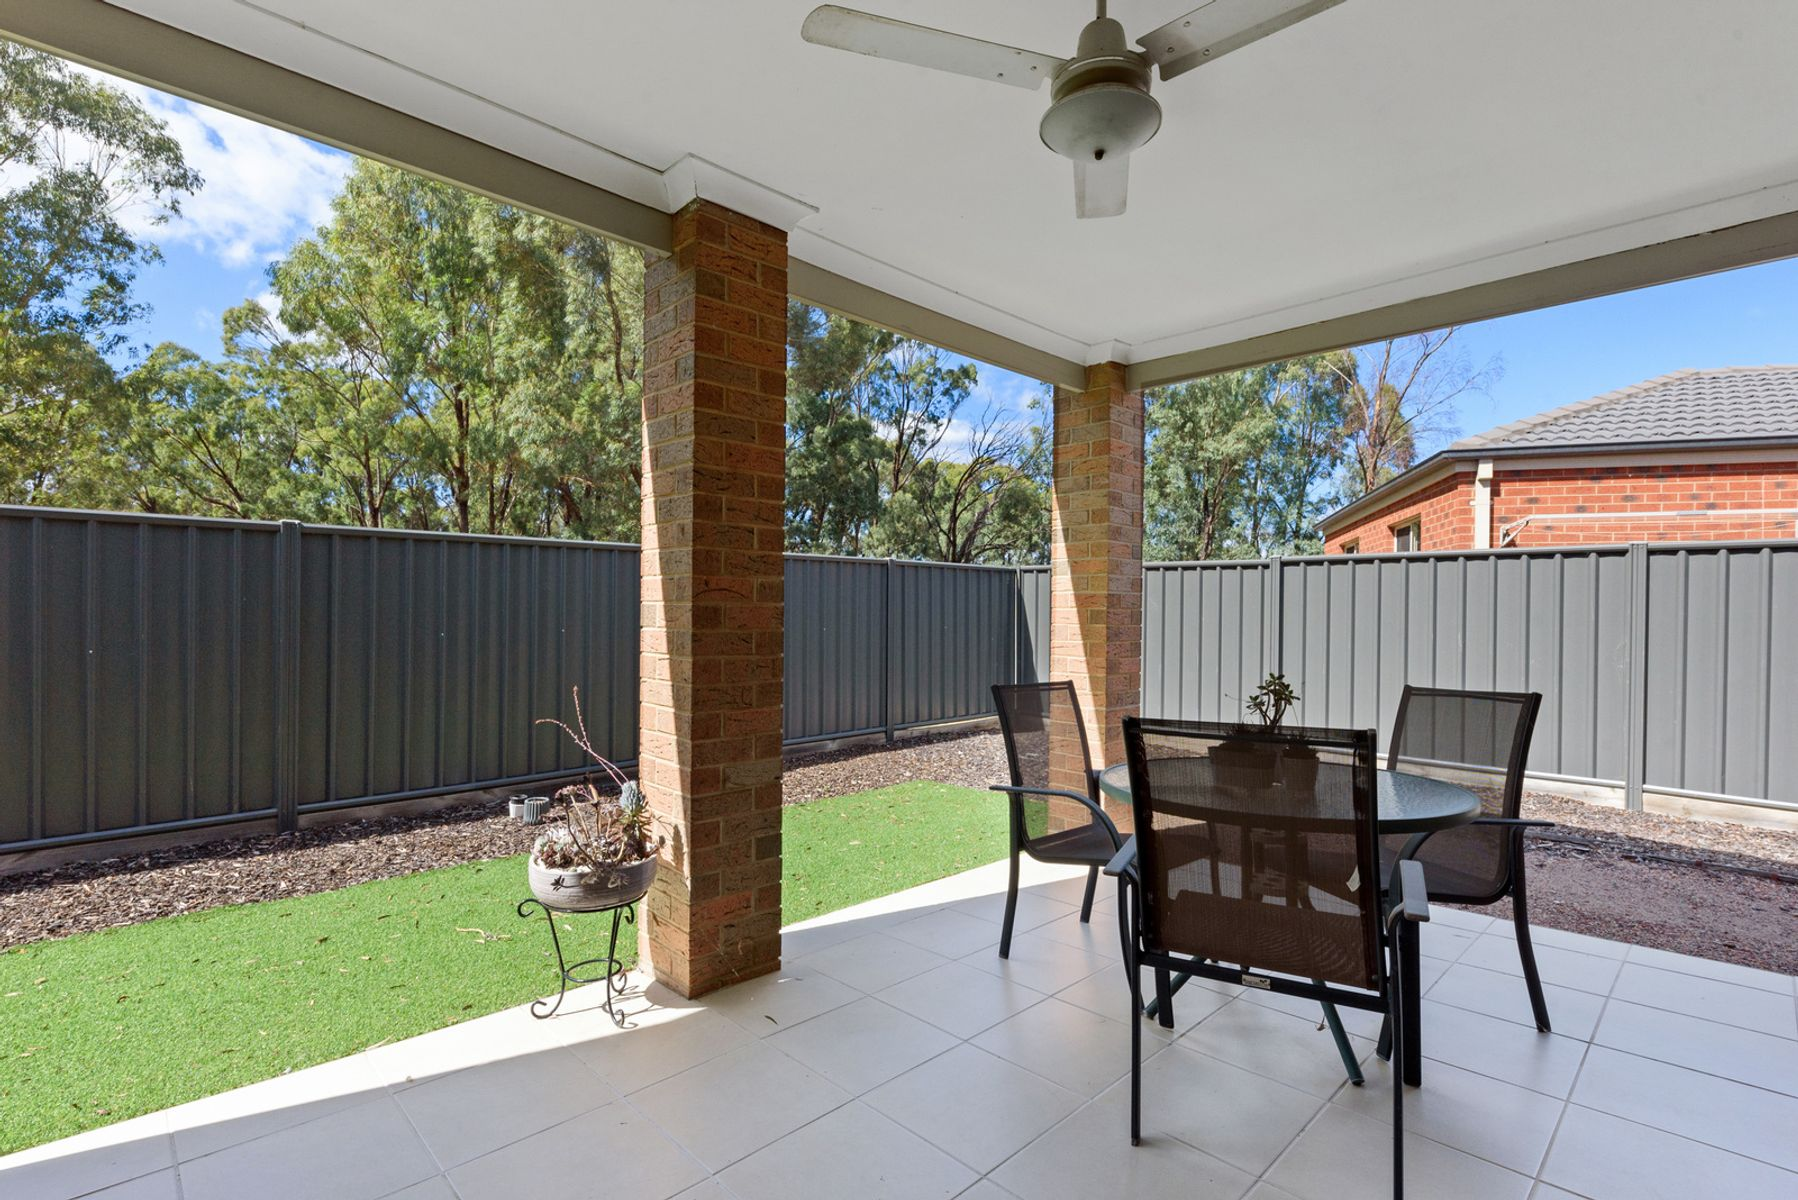 41 Evergreen Boulevard, Jackass Flat, VIC 3556